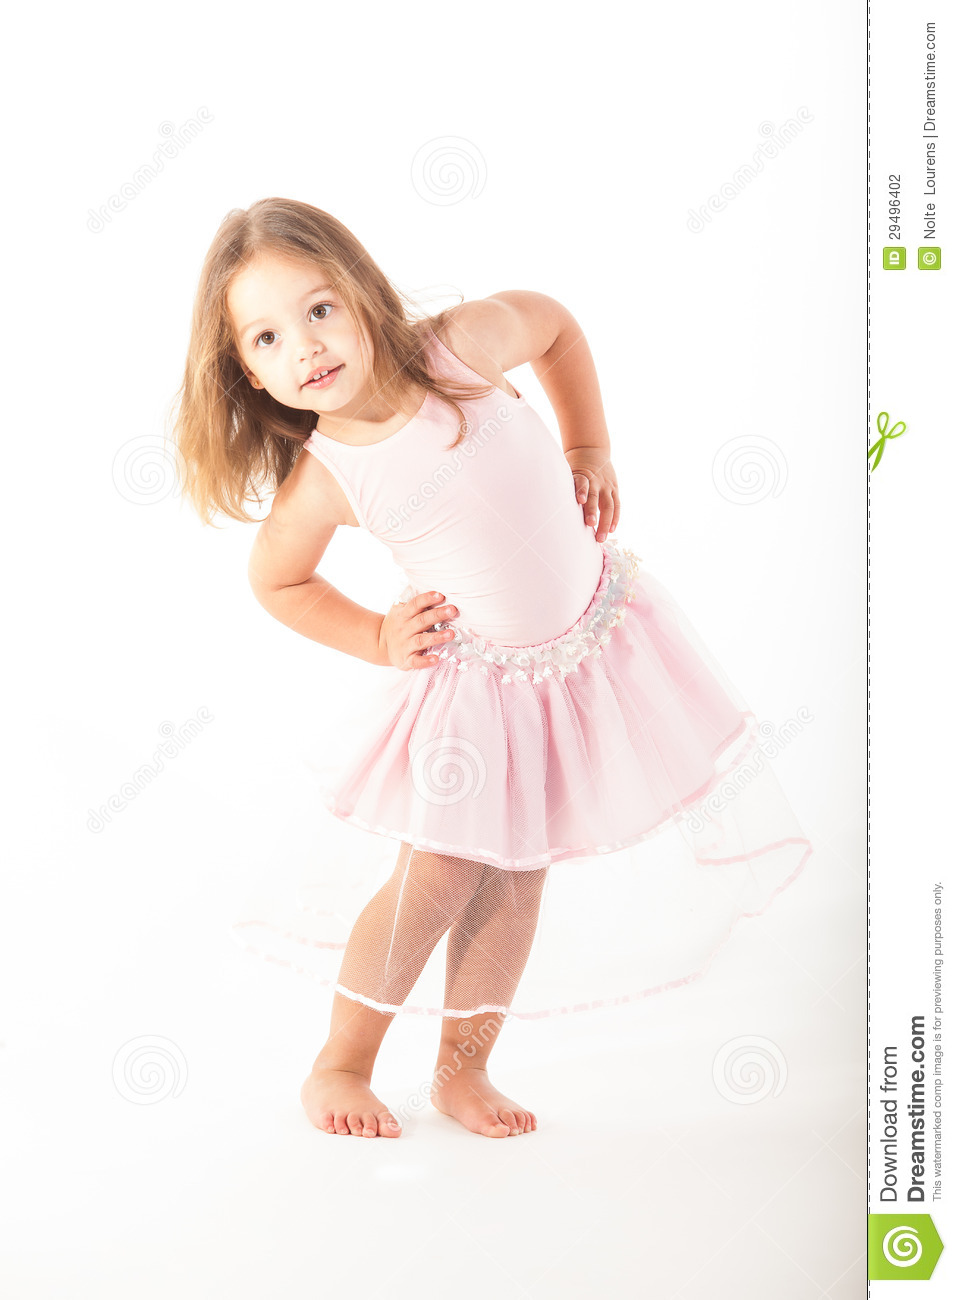 Lil Girls Dancing Pictures to Pin on Pinterest - PinsDaddy